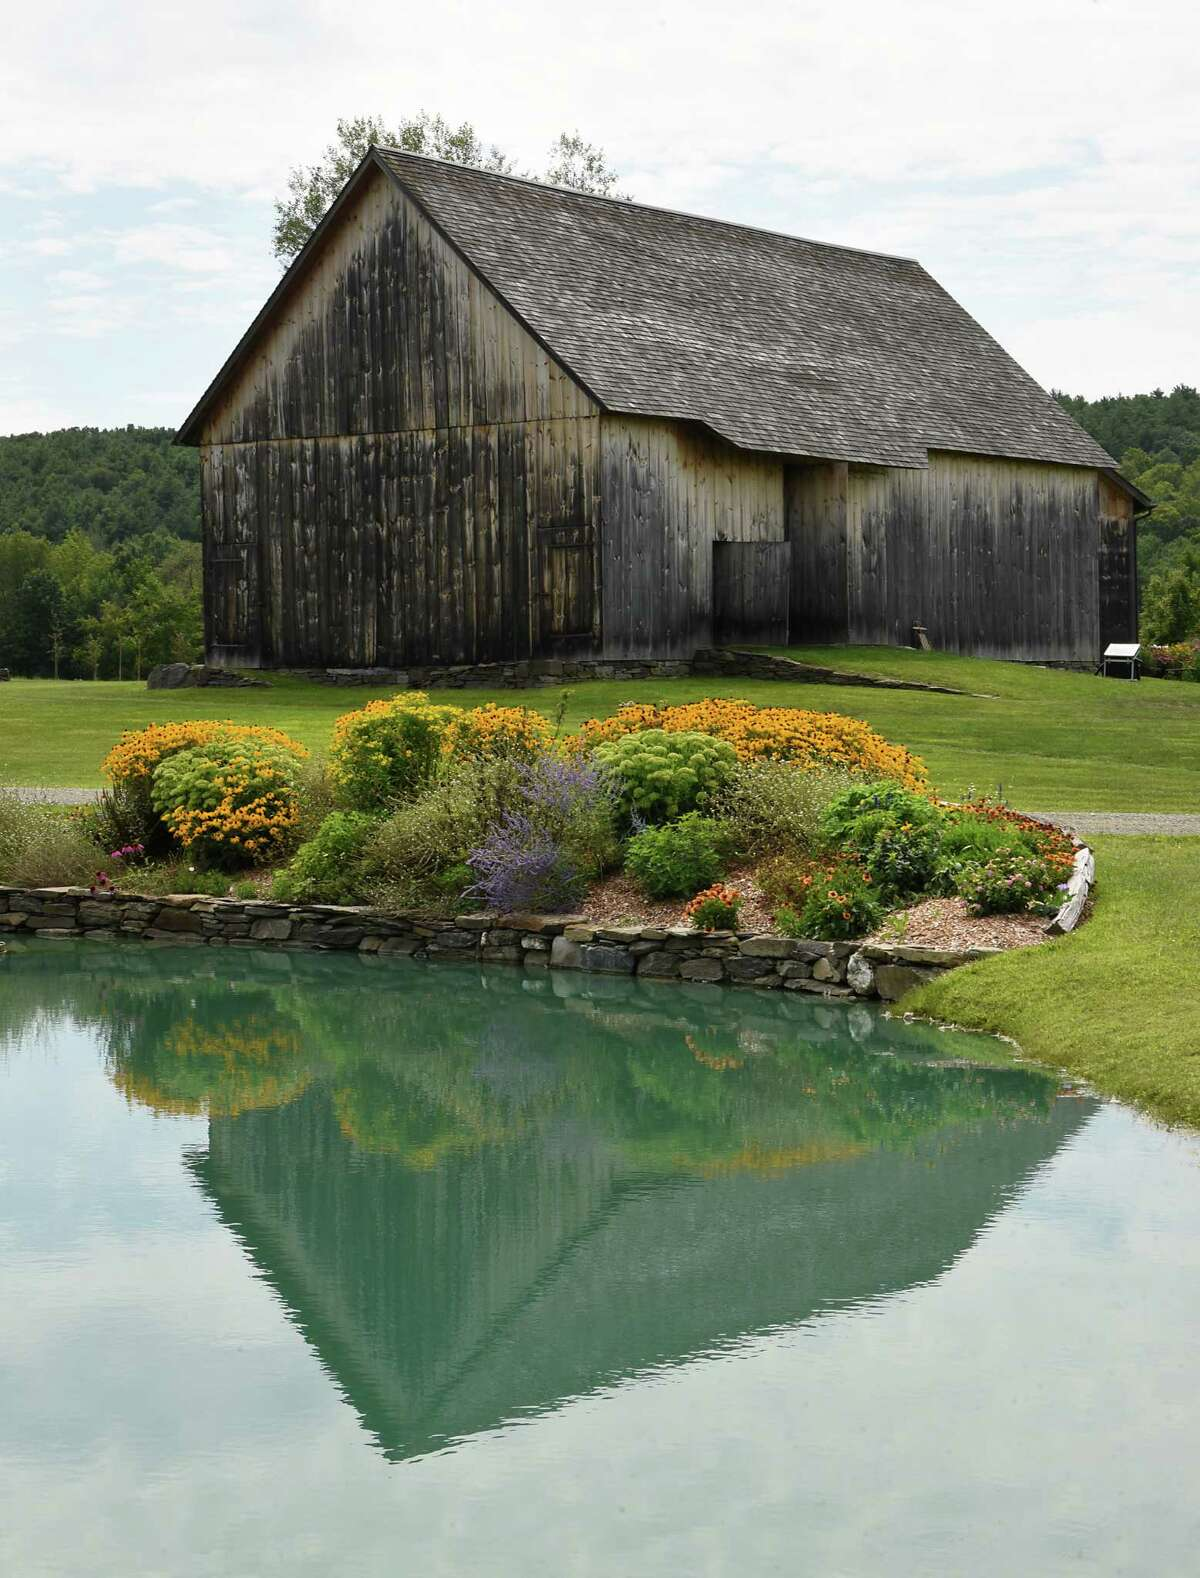 Exterior of a barn at Historic Barns of Nipmoose on Thursday Aug. 15, 2019 in Buskirk, N.Y. (Lori Van Buren/Times Union)